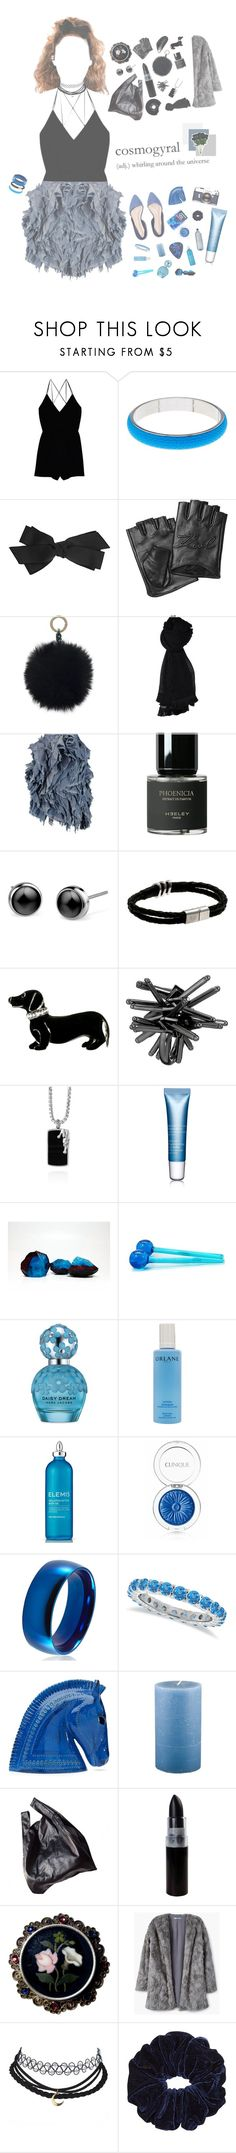 """""""Midnight Sun"""" by jhffa ❤ liked on Polyvore featuring Wilfred, Marc Jacobs, Dorothy Perkins, Karl Lagerfeld, Oscar de la Renta, KOCCA, Marques'Almeida, Heeley Parfums, French Connection and Effy Jewelry"""